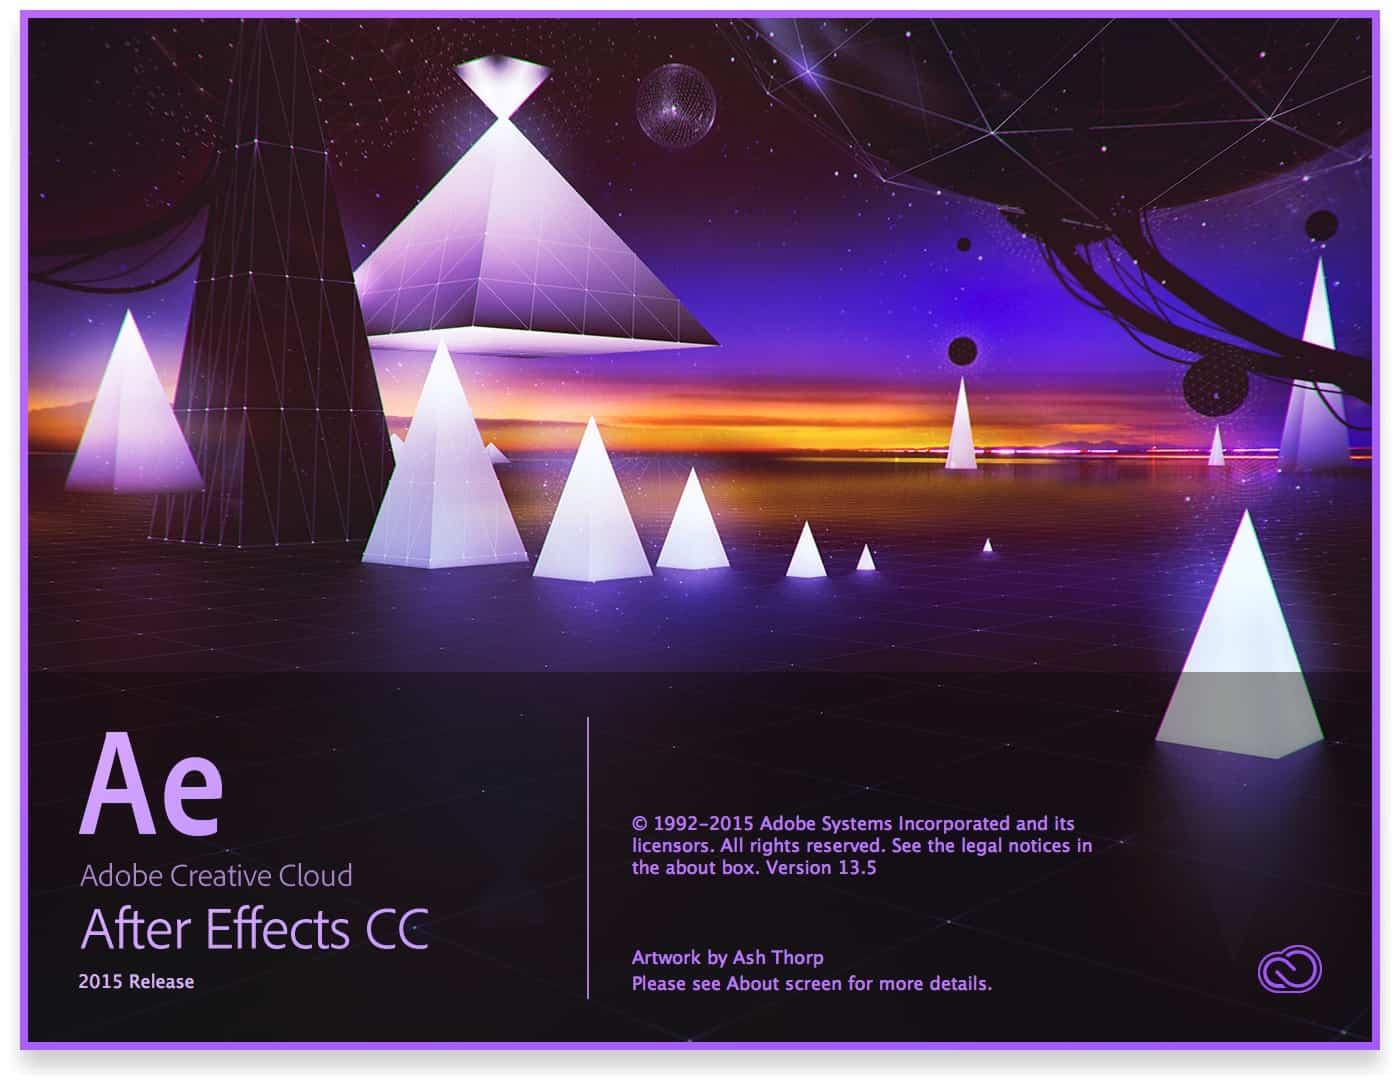 A Roundup Of Adobe Creative Cloud 2015 Splash Screens